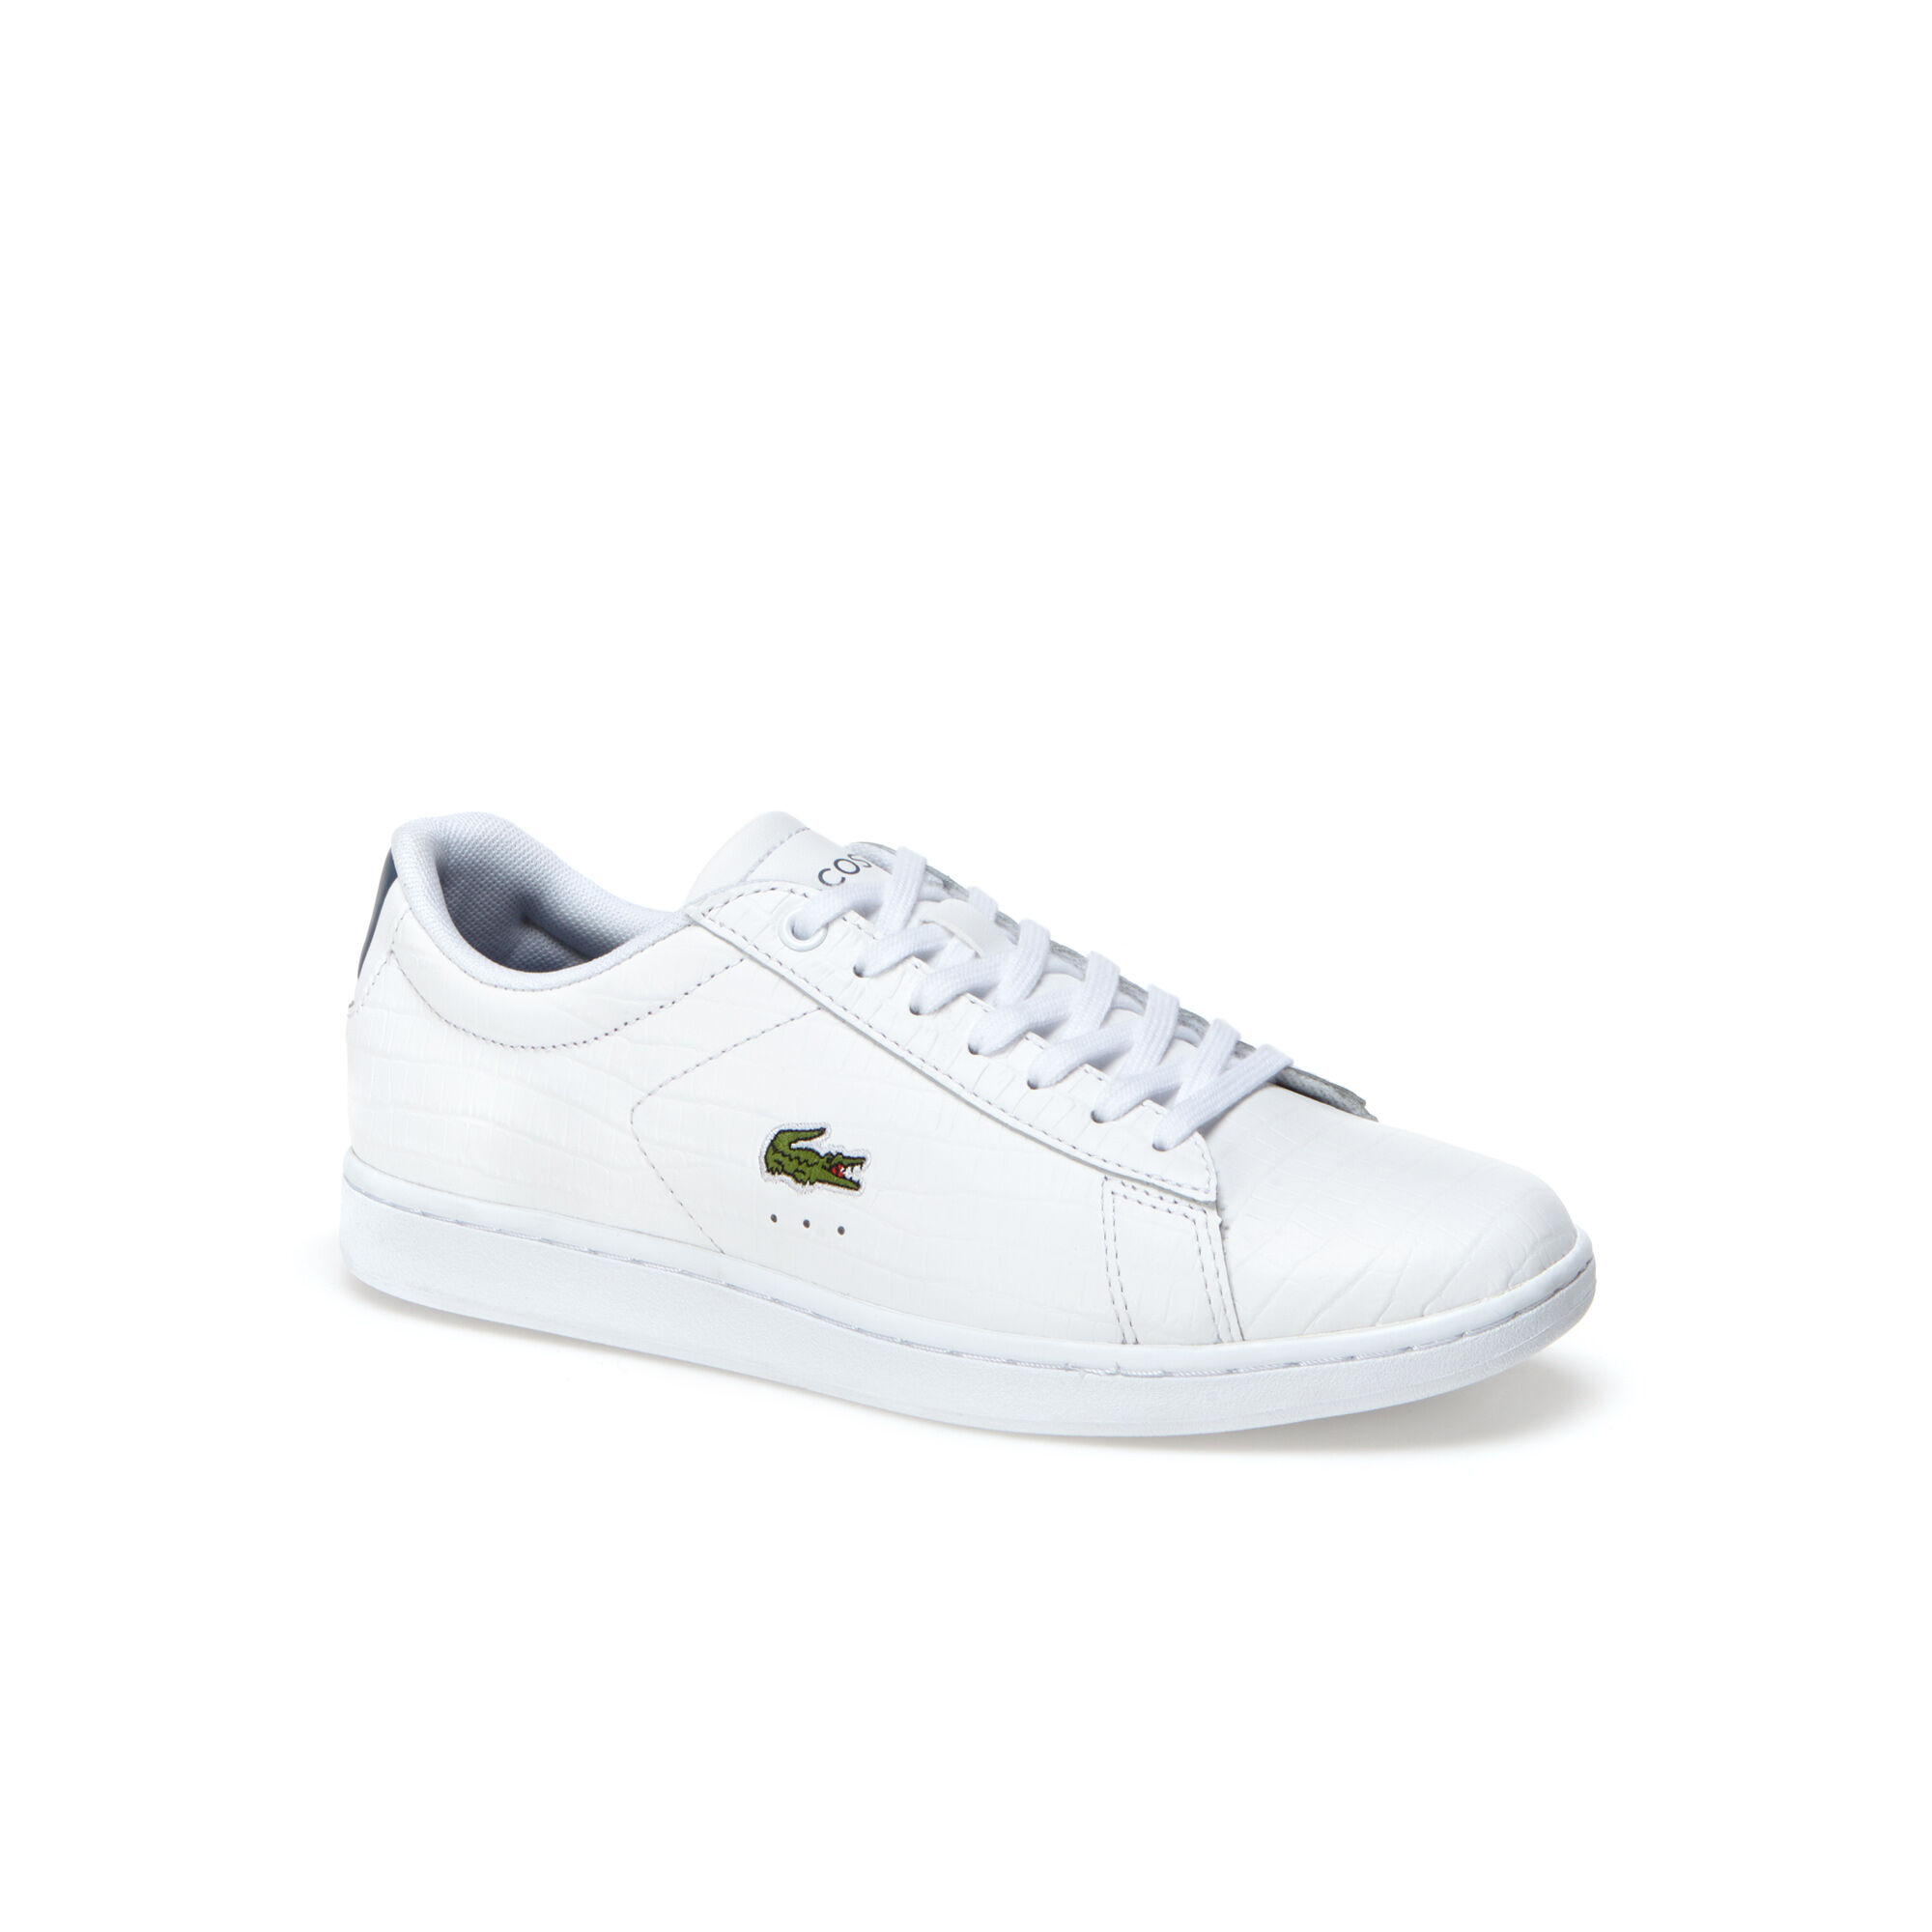 Lacoste Buy Shoes Best From Sneakers BqHUBRXWwr